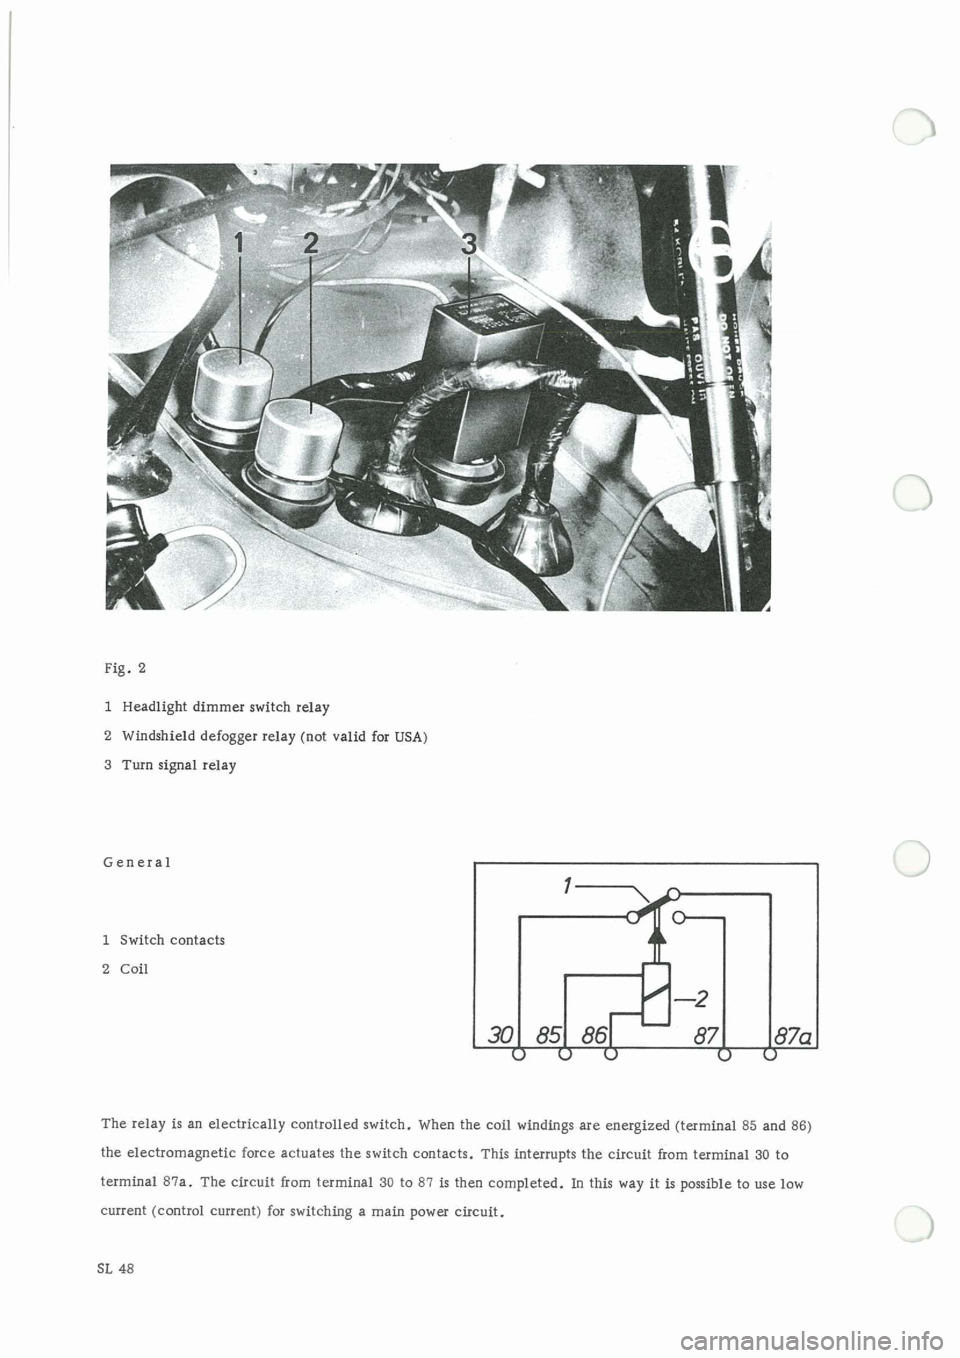 PORSCHE 911 1966 1.G Electrical Diagrams Workshop Manual, Page 7